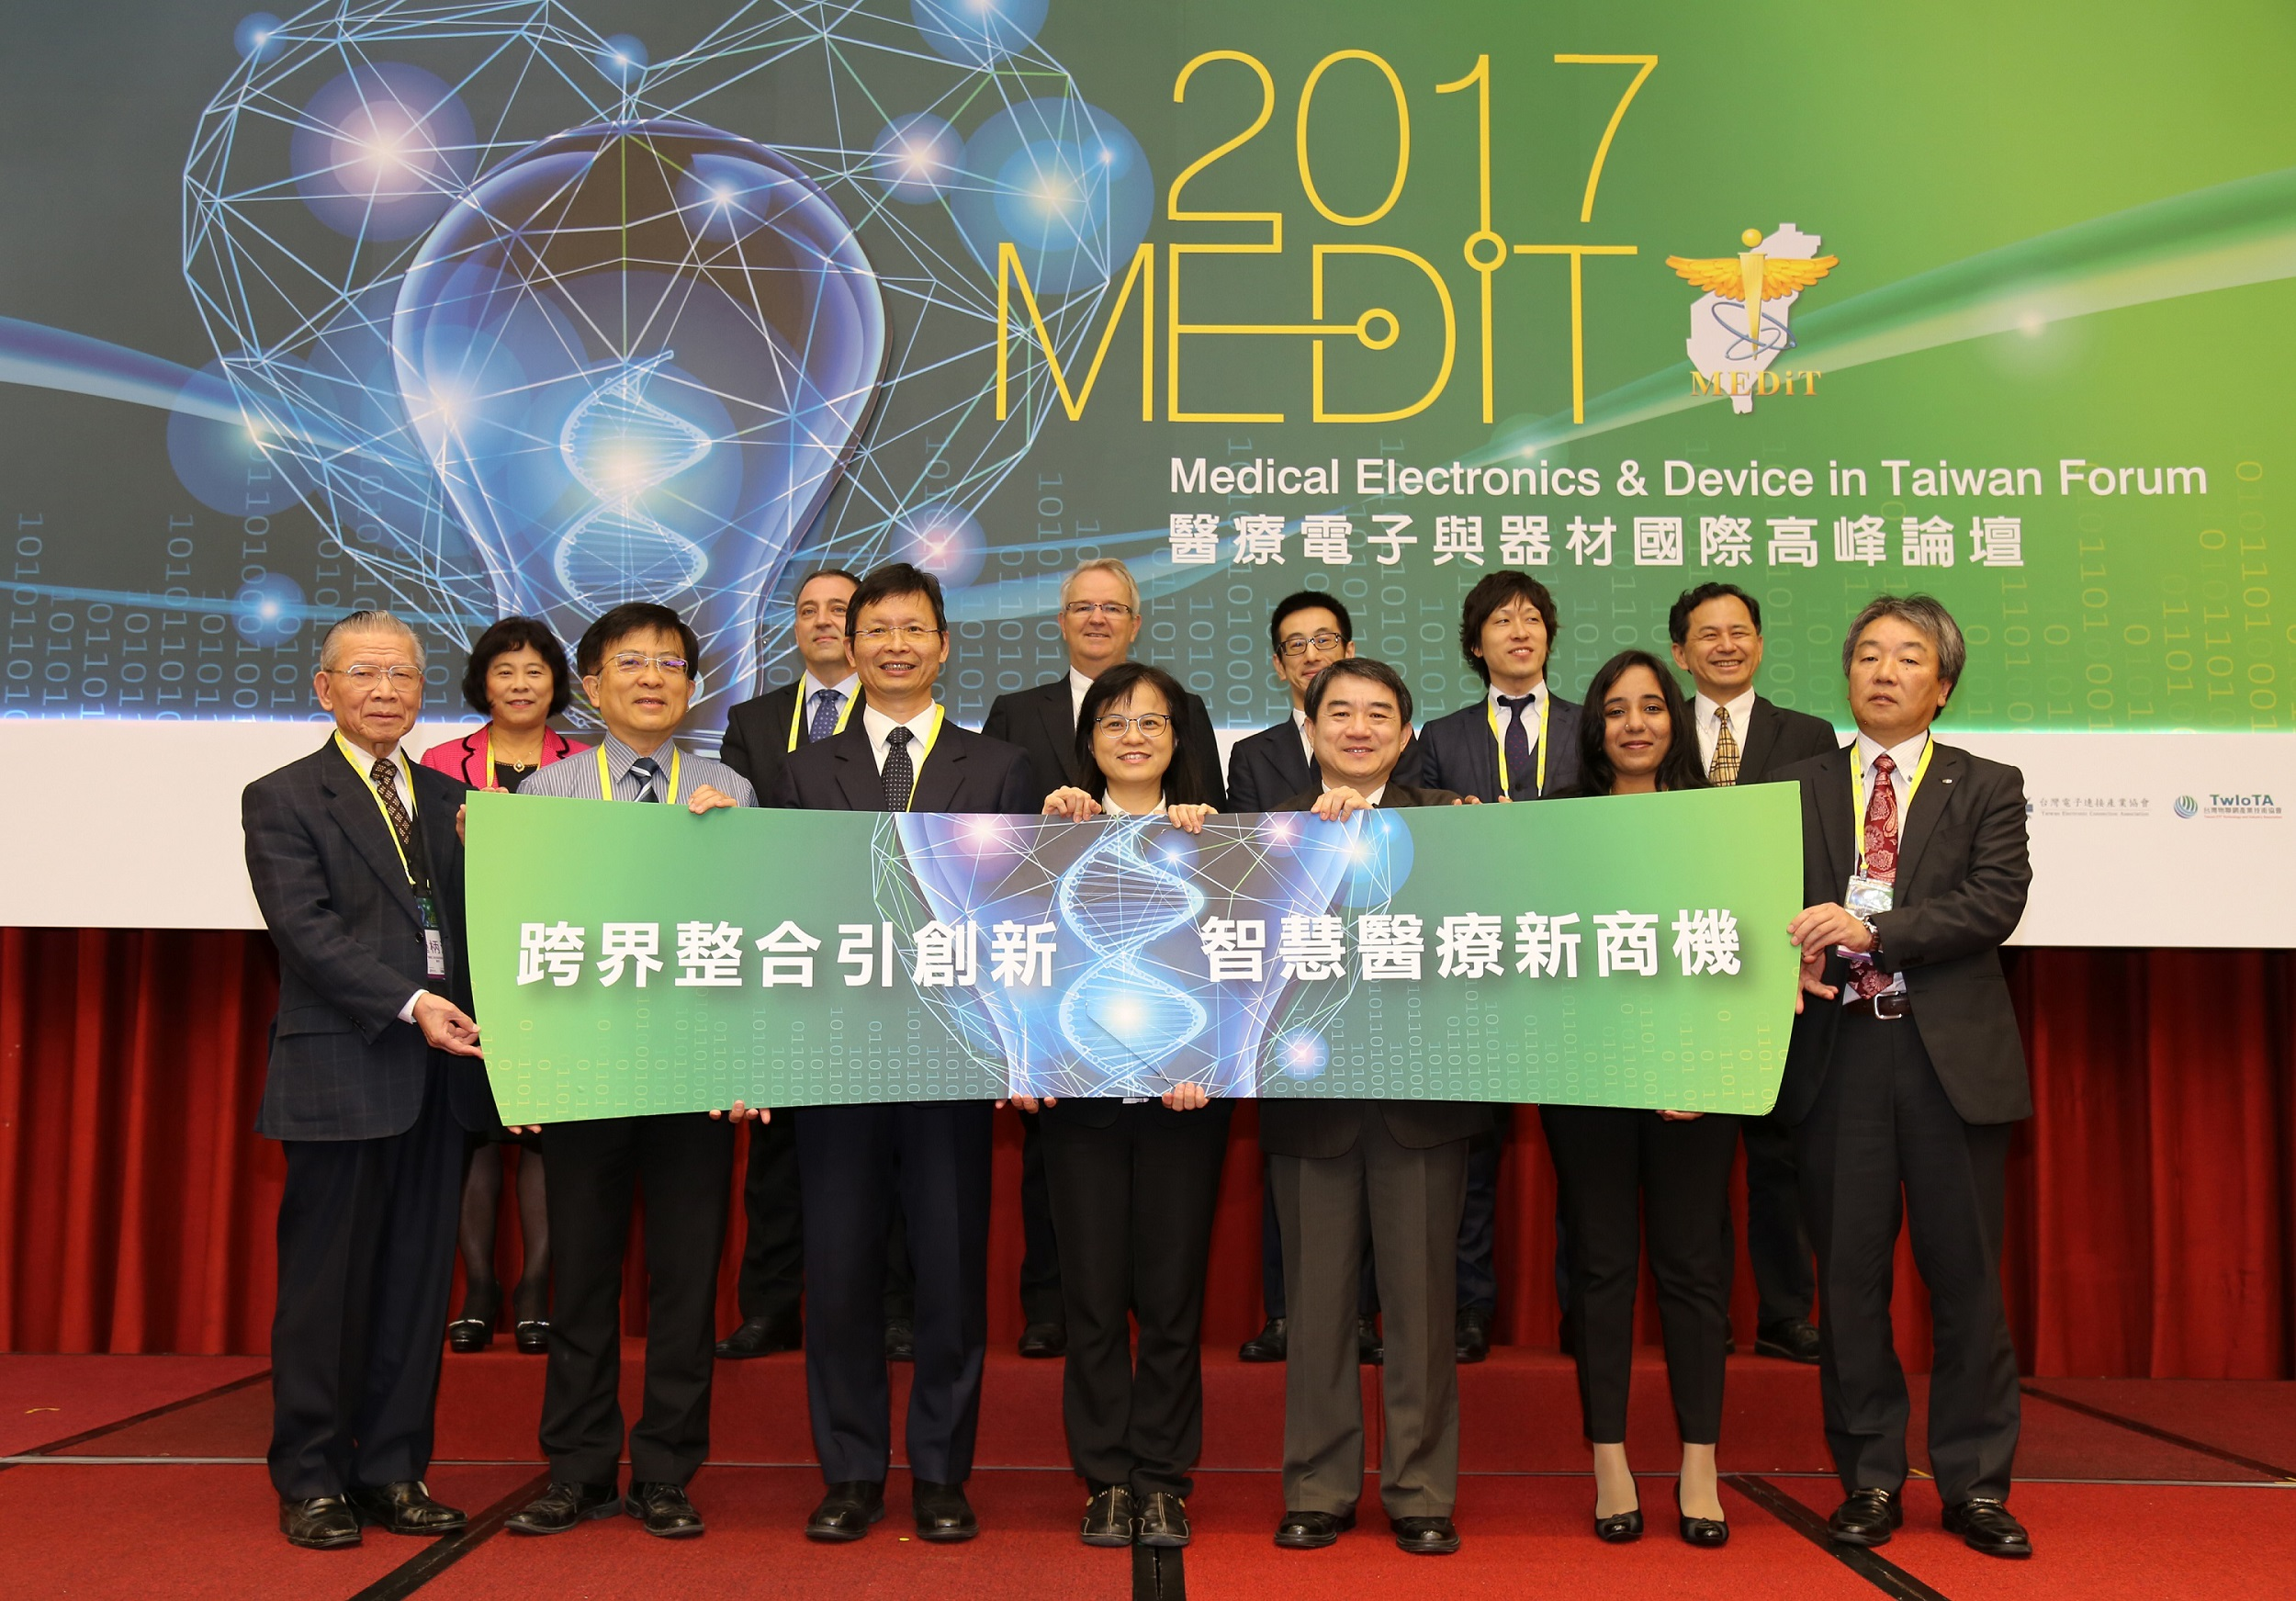 Medical Electronics & Device in Taiwan Forum 2017